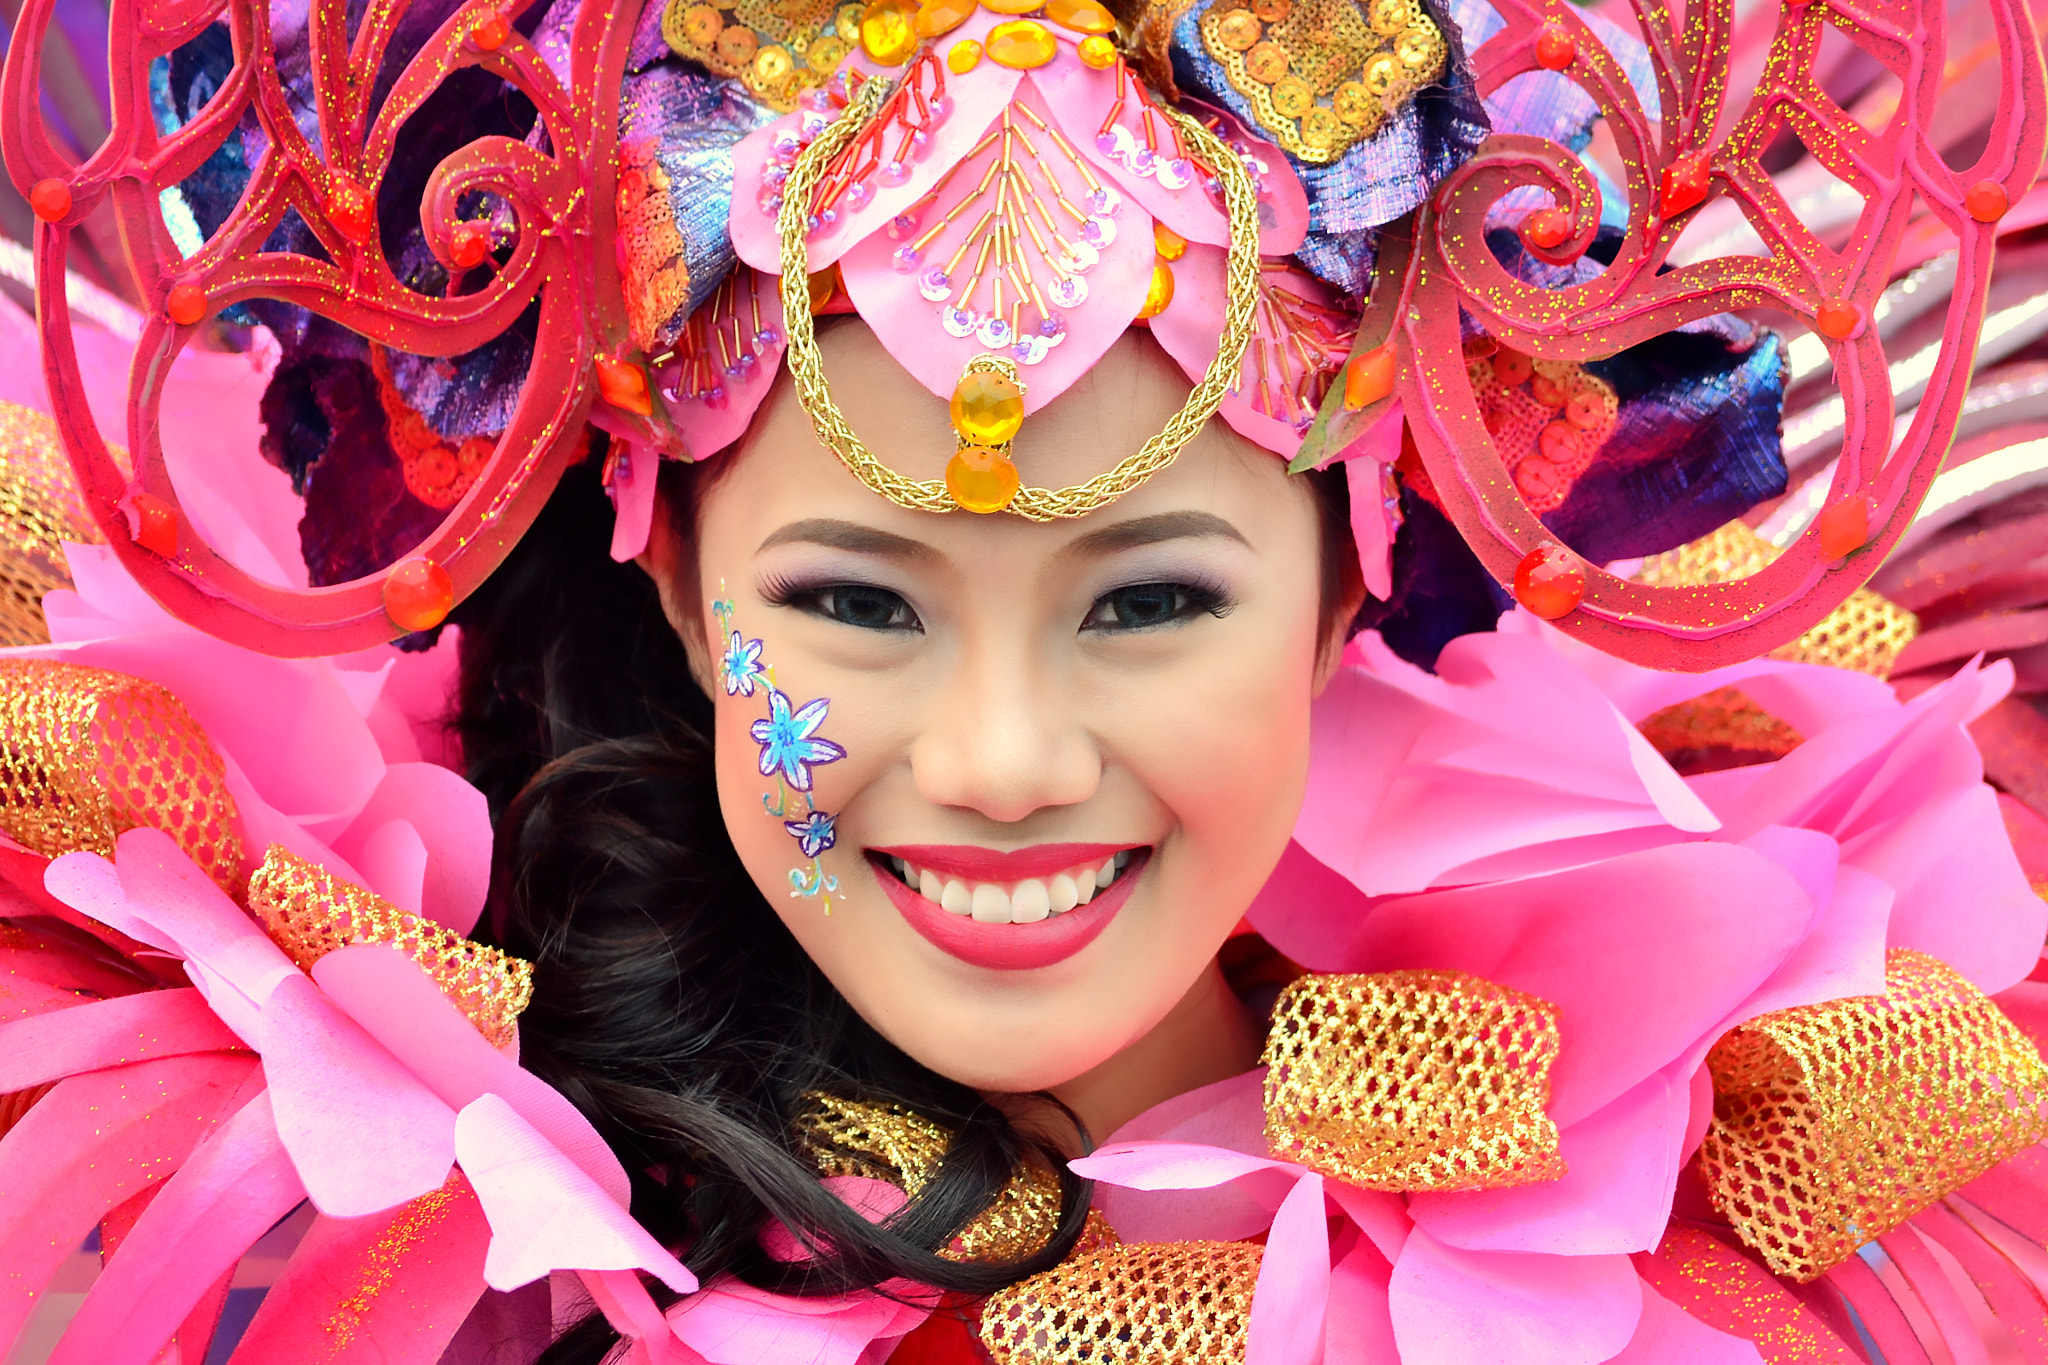 Photograph Pintaflores Festival 2012 Beauty by Wilfredo Lumagbas Jr. on 500px